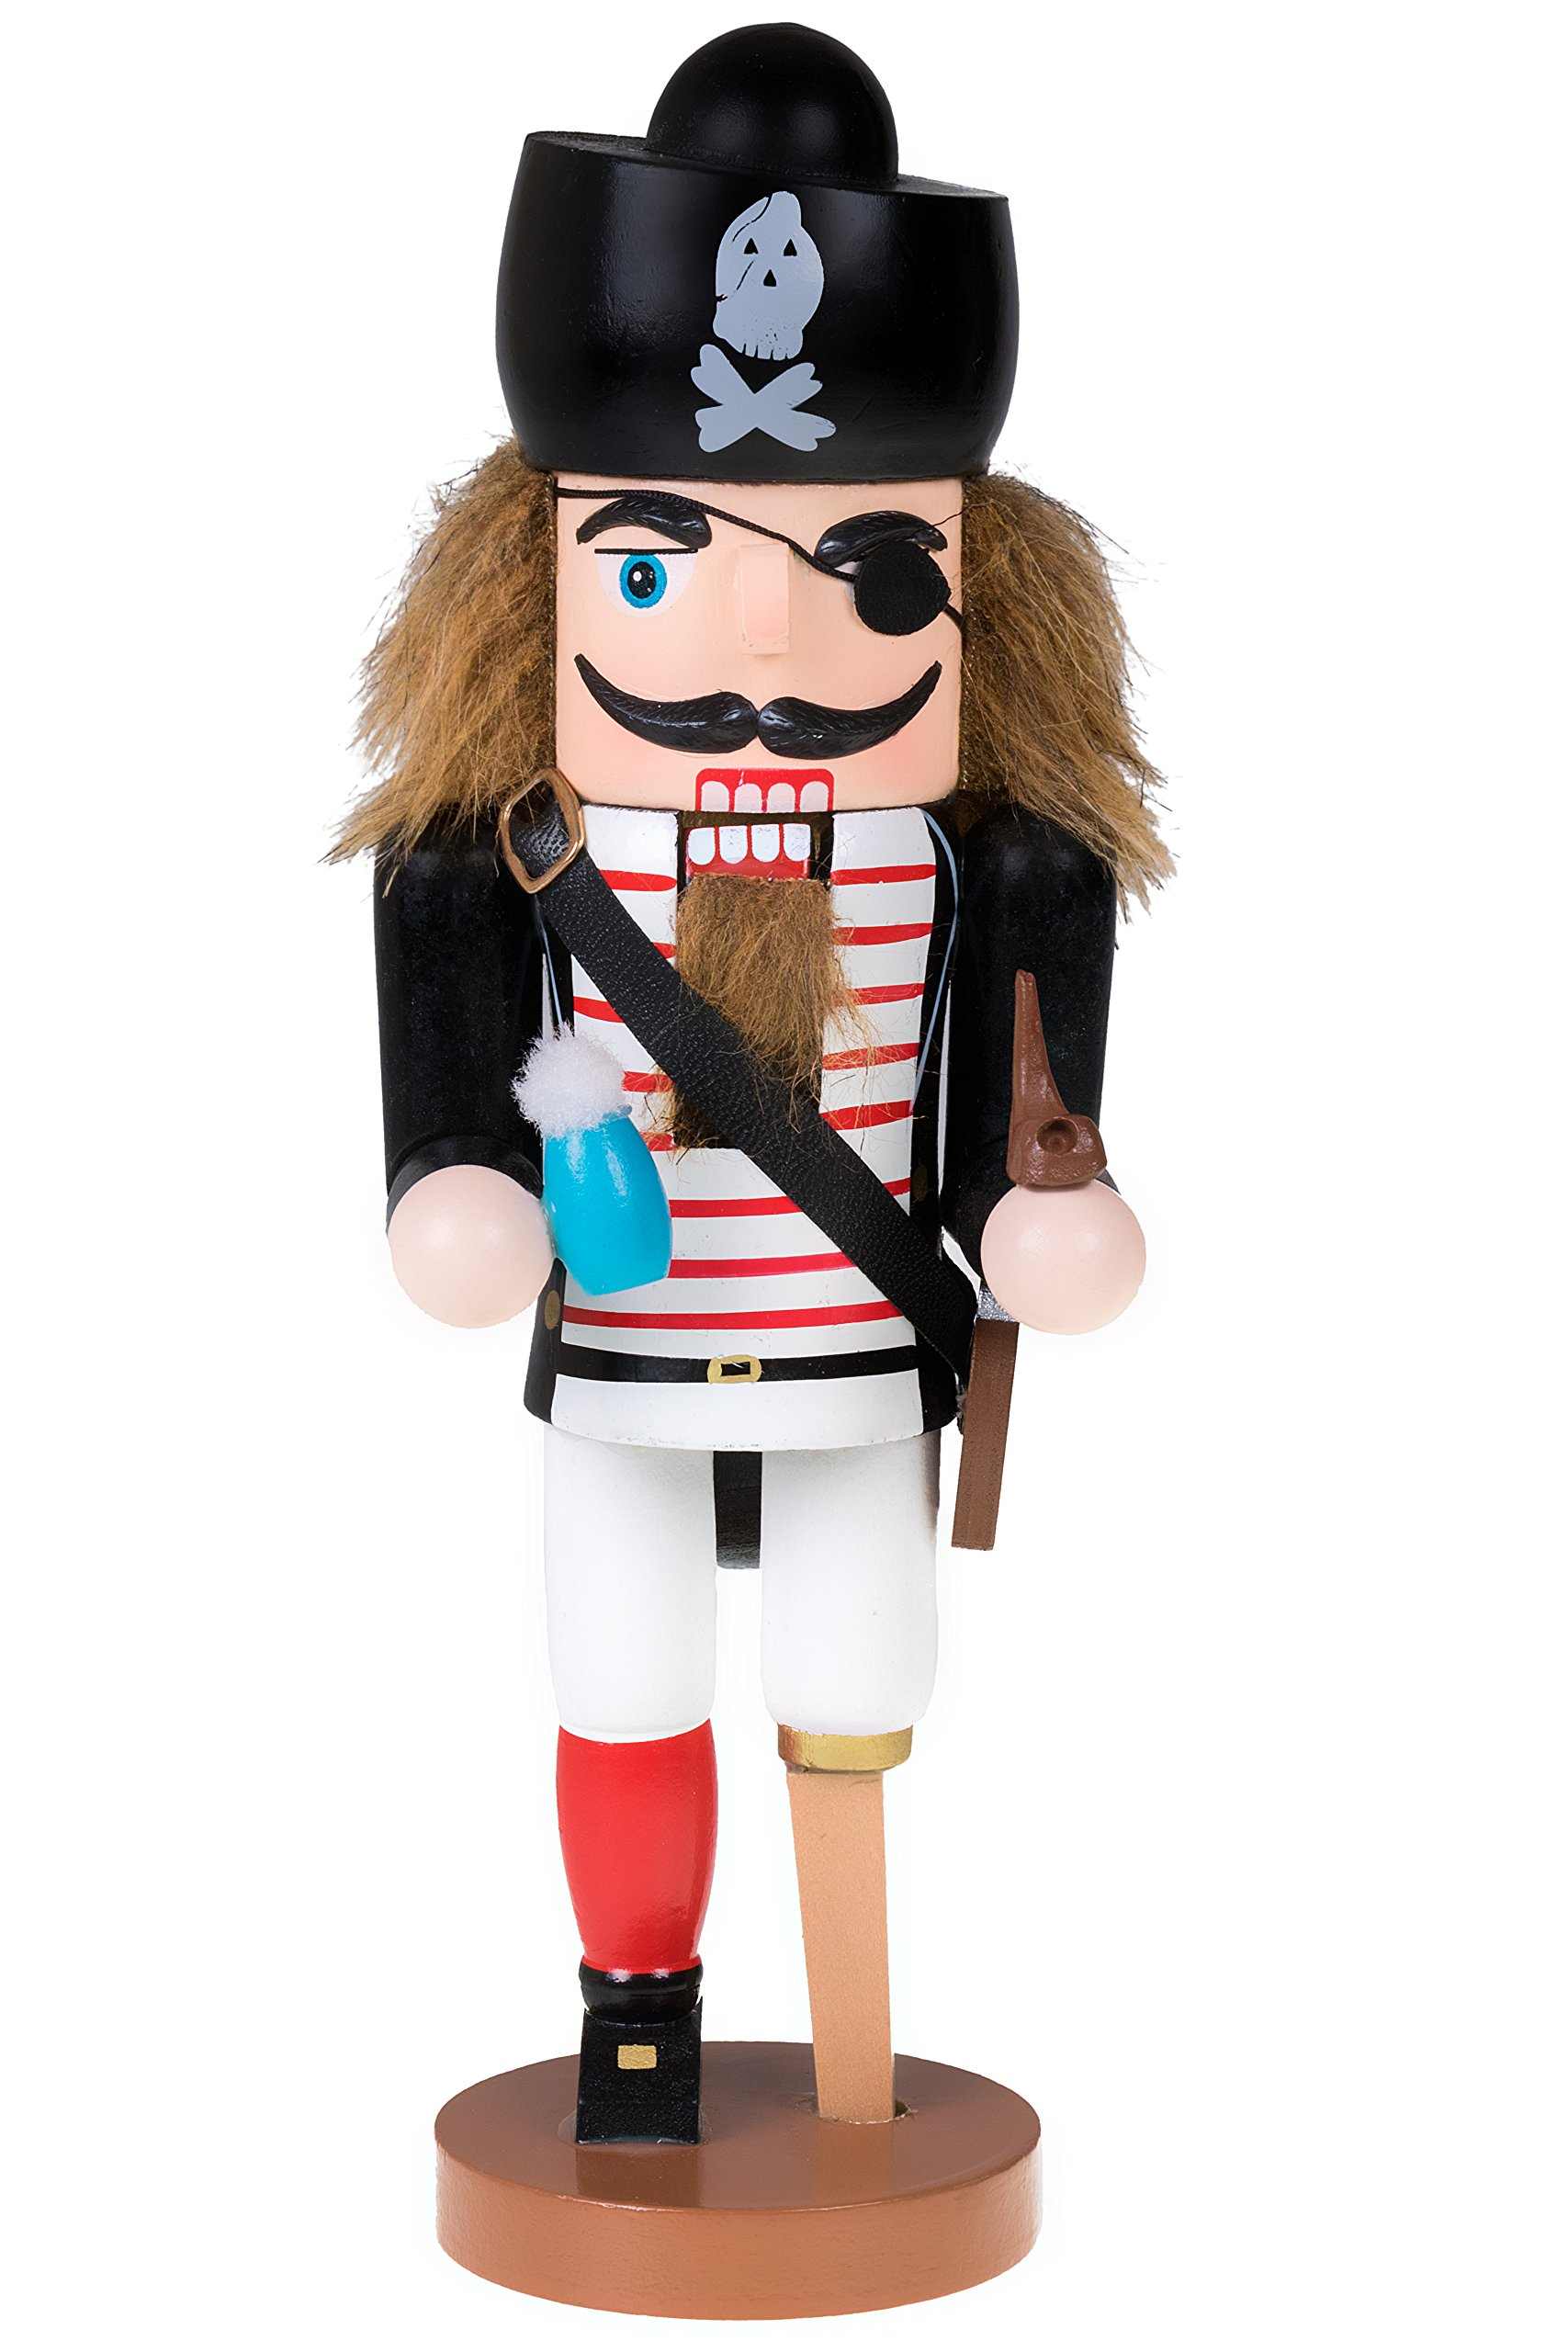 Traditional Wooden Pirate Nutcracker with Peg Leg by Clever Creations | Festive Holiday Décor | 10'' Tall Perfect for Shelves and Tables | Ornate Details | Collectible 100% Wood Figurine